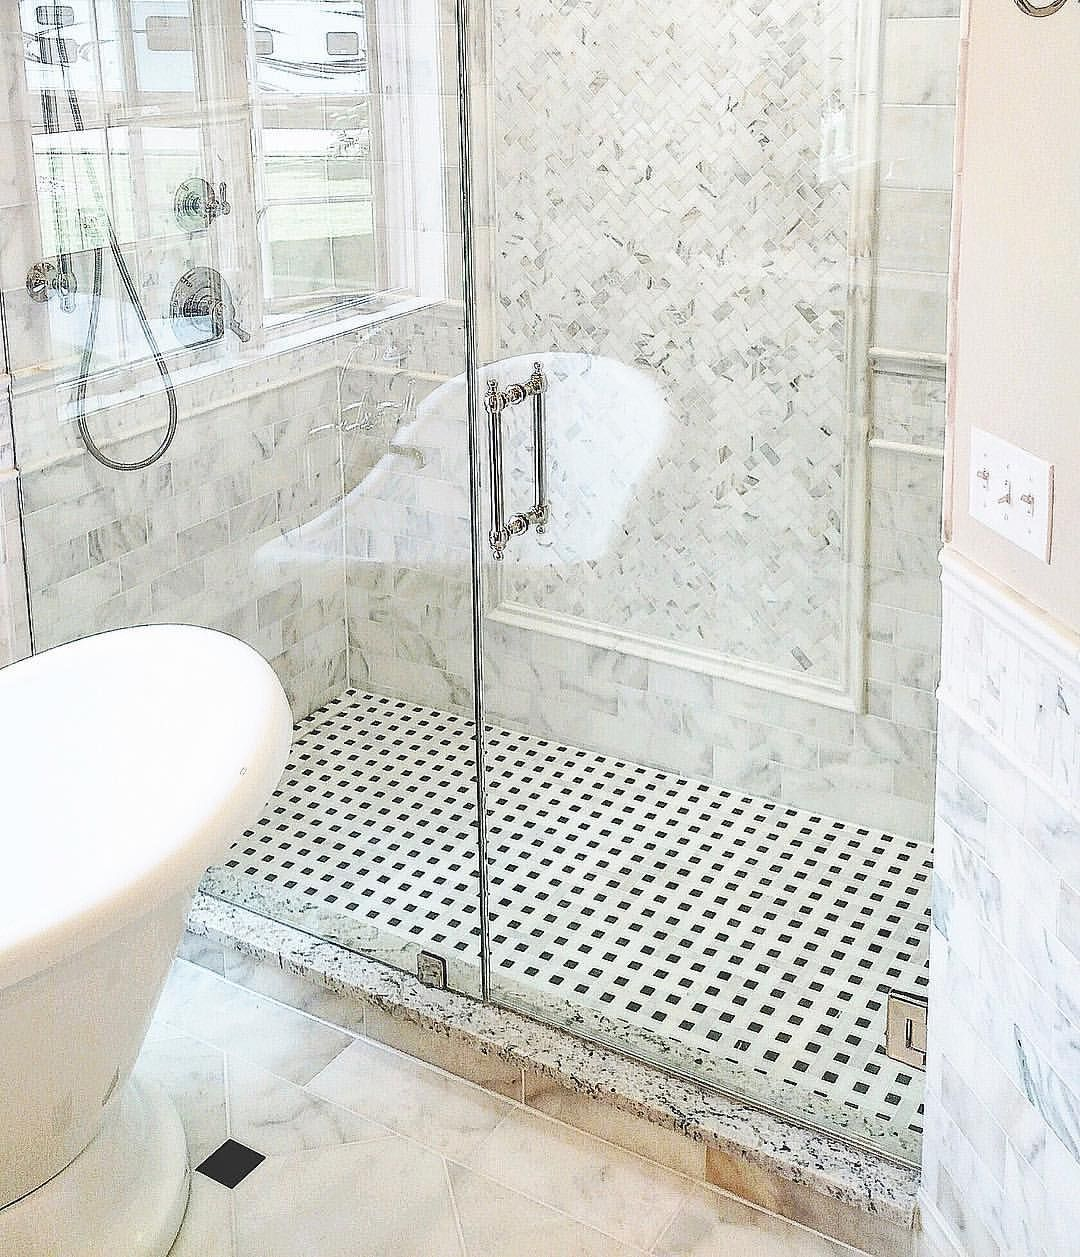 Tile Shower Ideas Marble Bathroom Ideas Herringbone Mosaic Marble Tilebuys Com Tilebuys On Instagram Shower Tile Calacatta Gold Marble Marble Bathroom